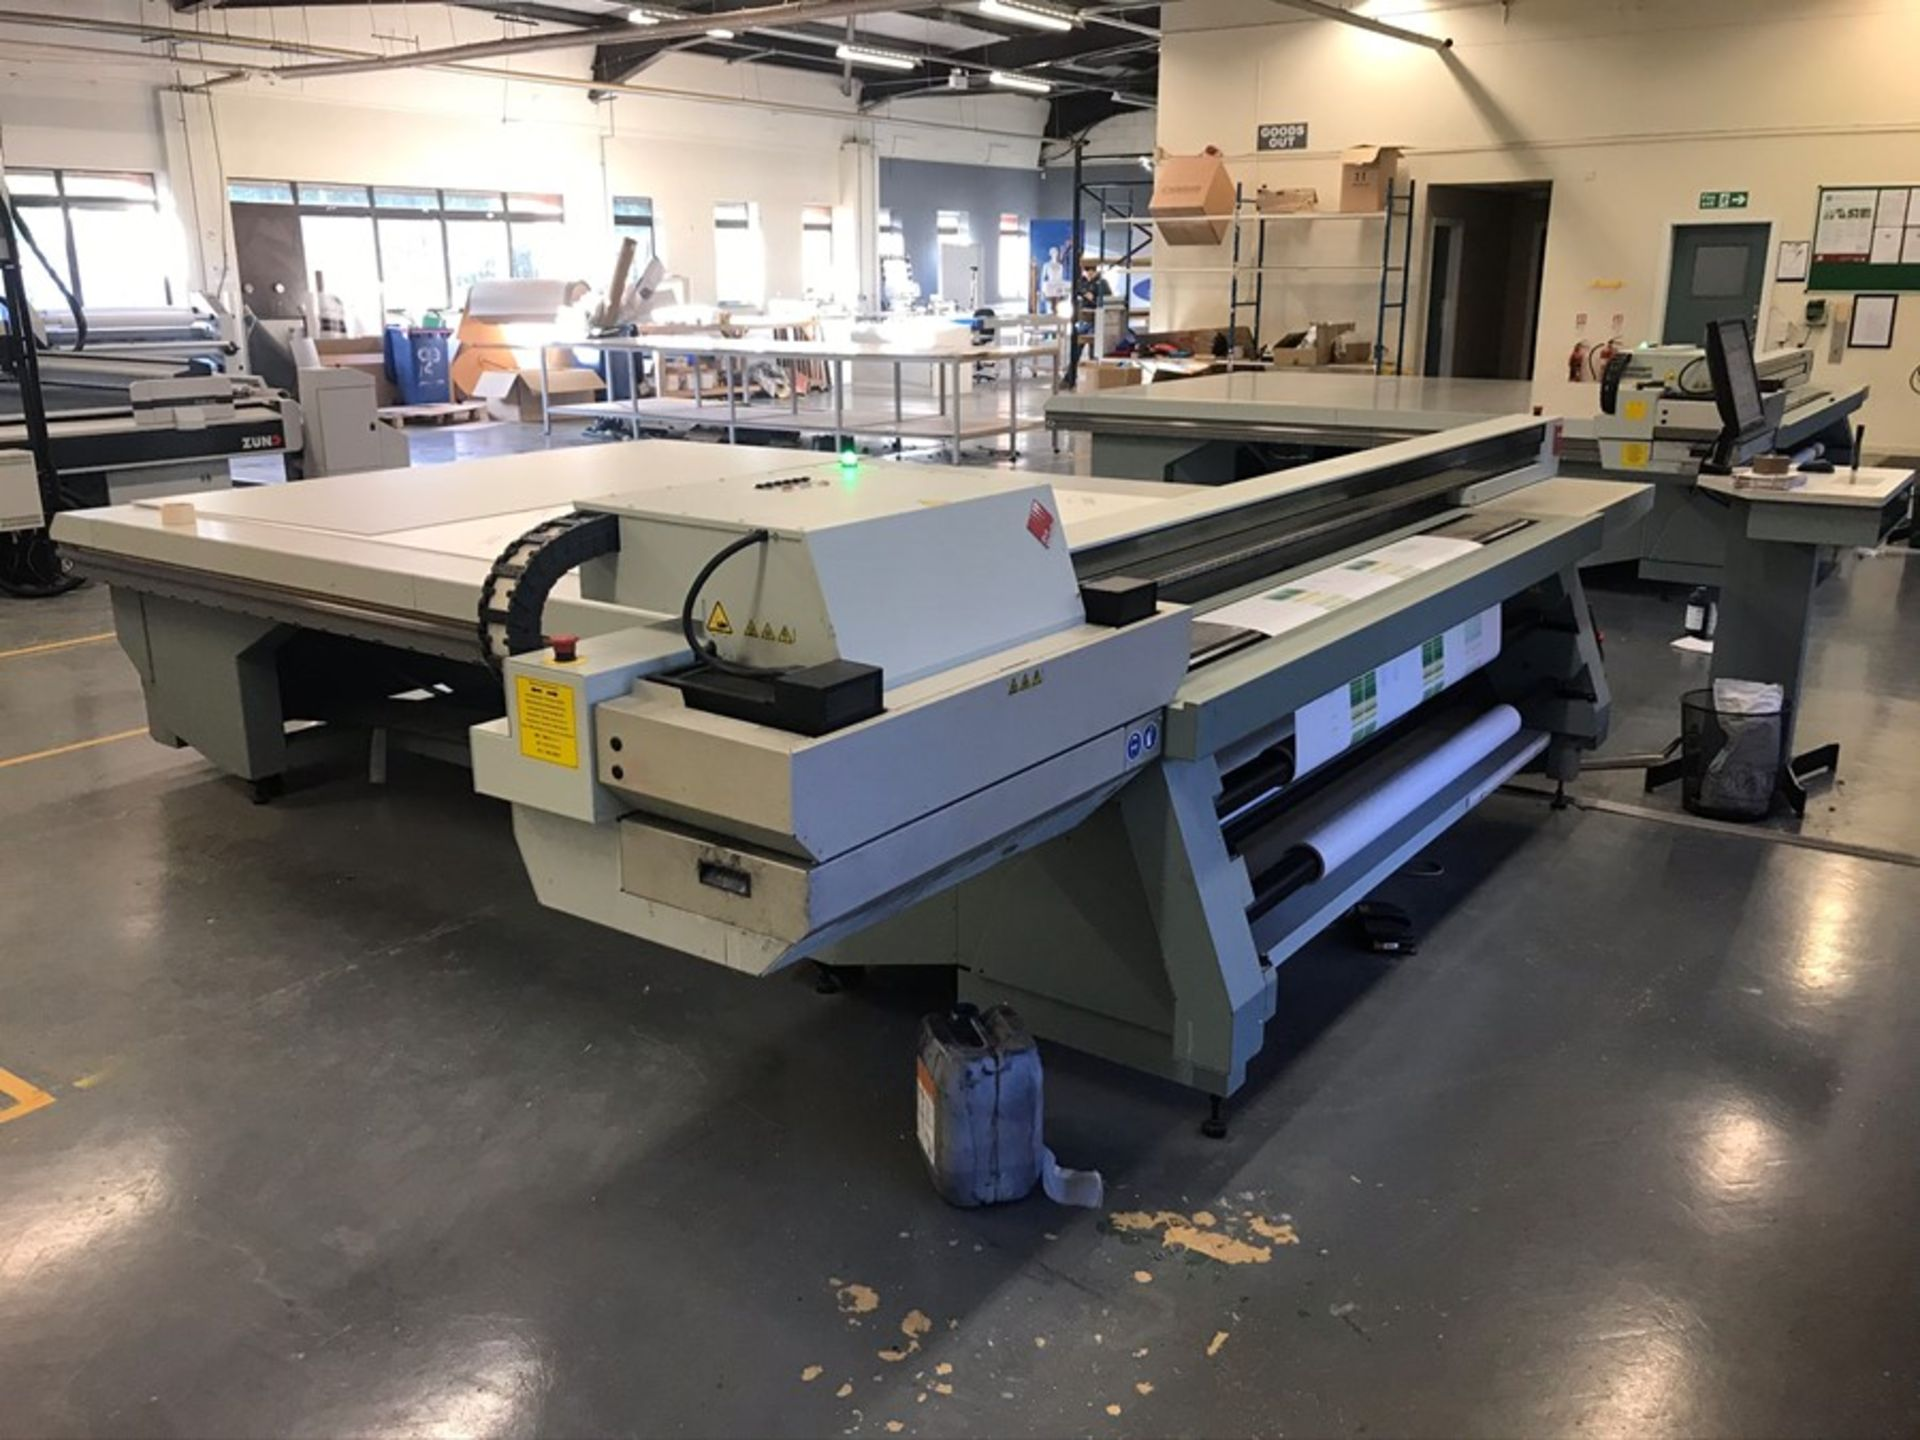 Oce Arizona 660 XT UV flatbed printer (2015) - Image 7 of 22